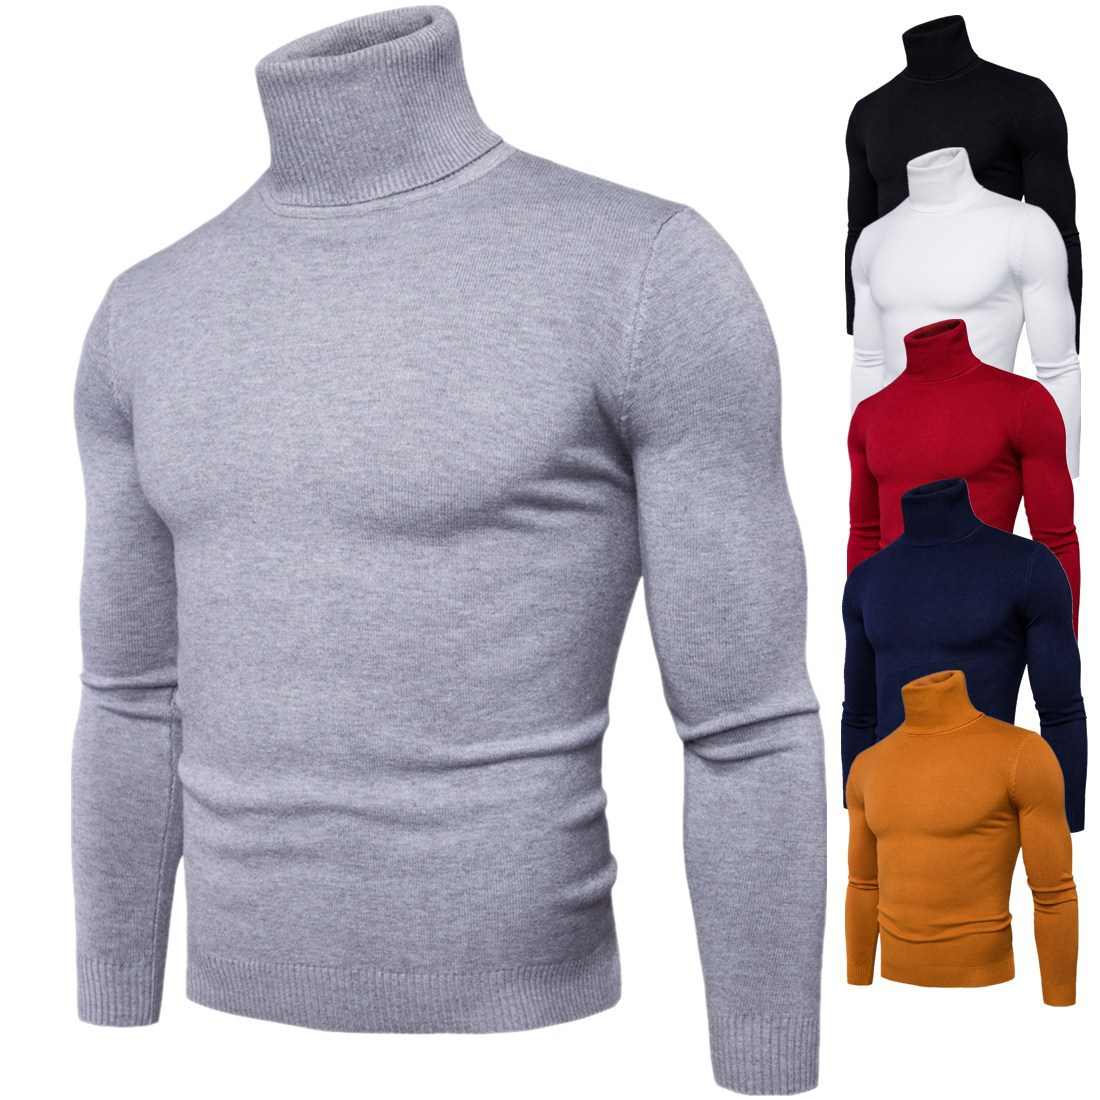 Men Solid Turtleneck Sweater Winter Slim Knitted Oversized Grey Sweater Boys Long Sleeve Male Pullover Plus Size Casual Knitwear